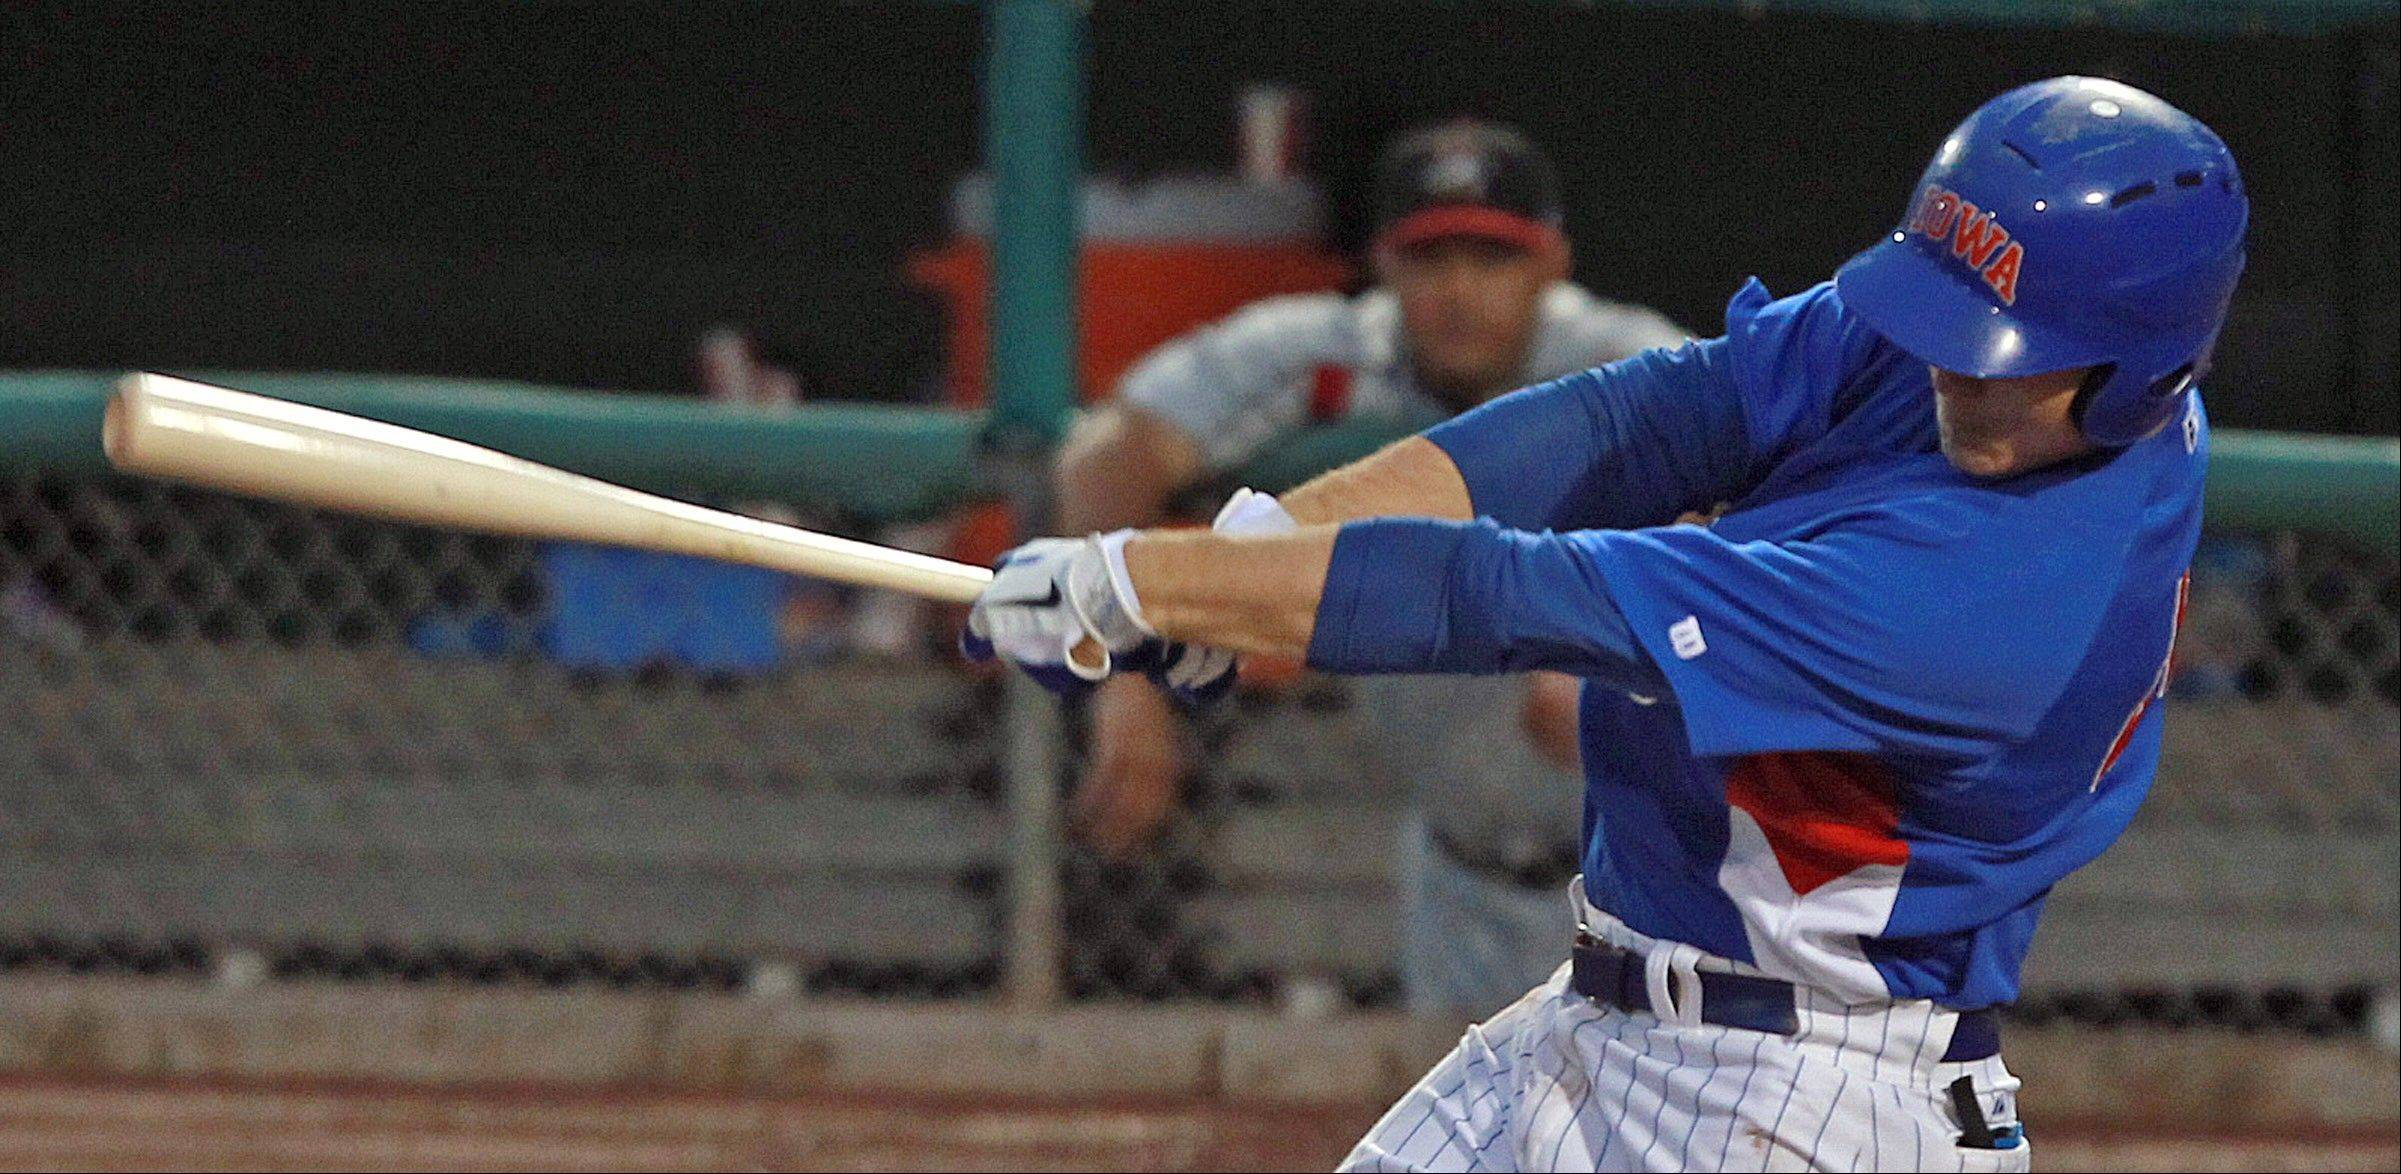 Cubs prospect Anthony Rizzo hit 23 home runs for the Iowa Cubs, and he'll get a chance to connect with Chicago Cubs fans with his debut Tuesday at Wrigley Field. Here he connected for a single against Albuquerque in June 15 game at Principal Park in Des Moines.